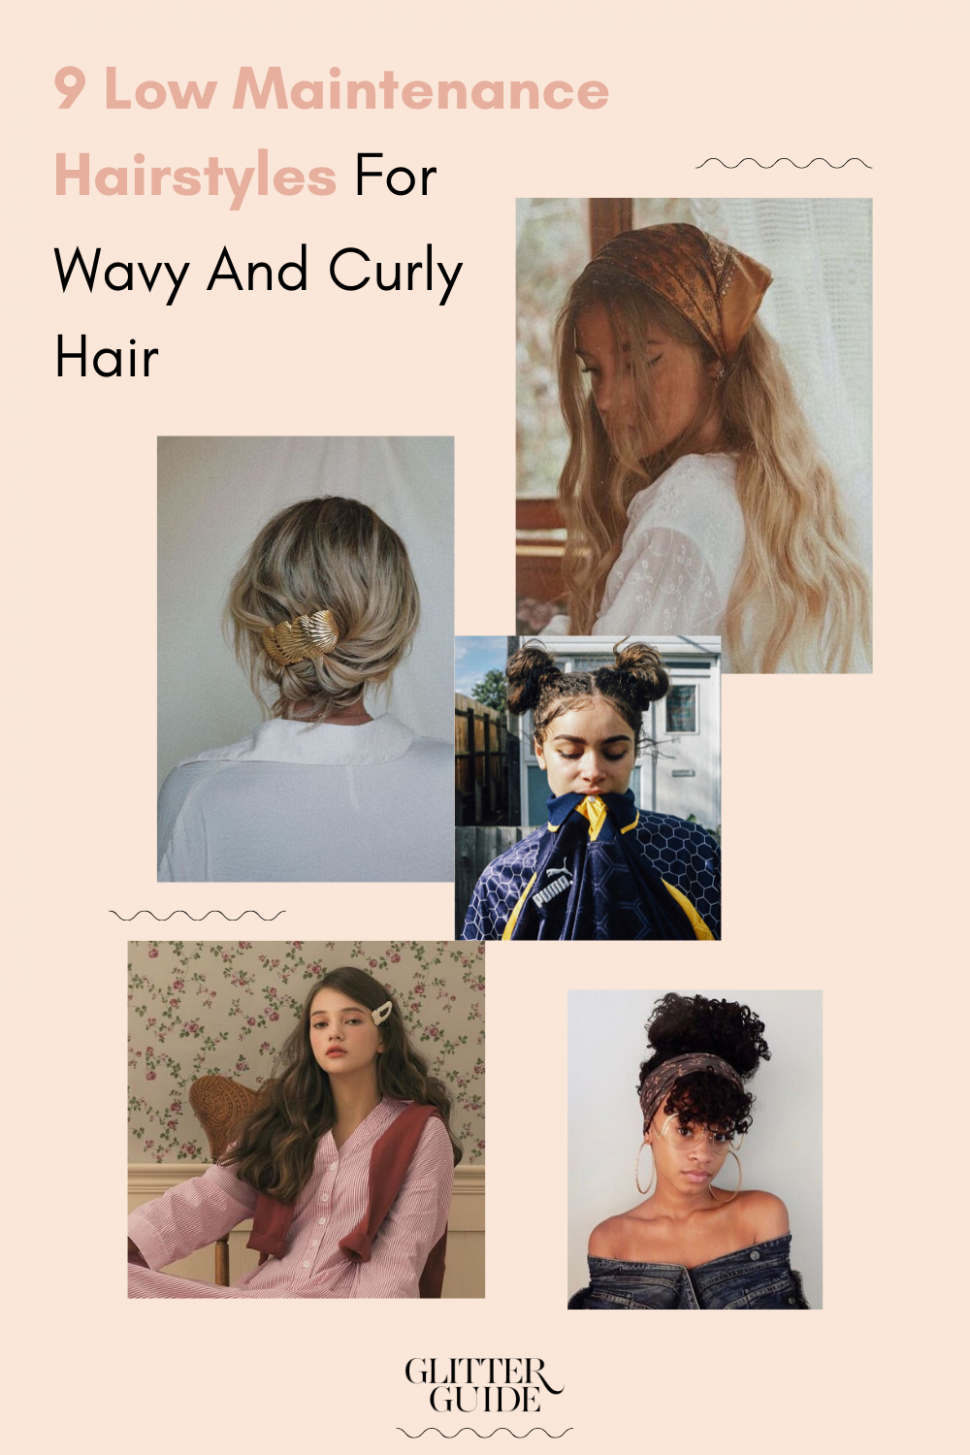 10 Low Maintenance Hairstyles For Wavy And Curly Hair Glitter Guide Interview Hairstyles For Curly Hair